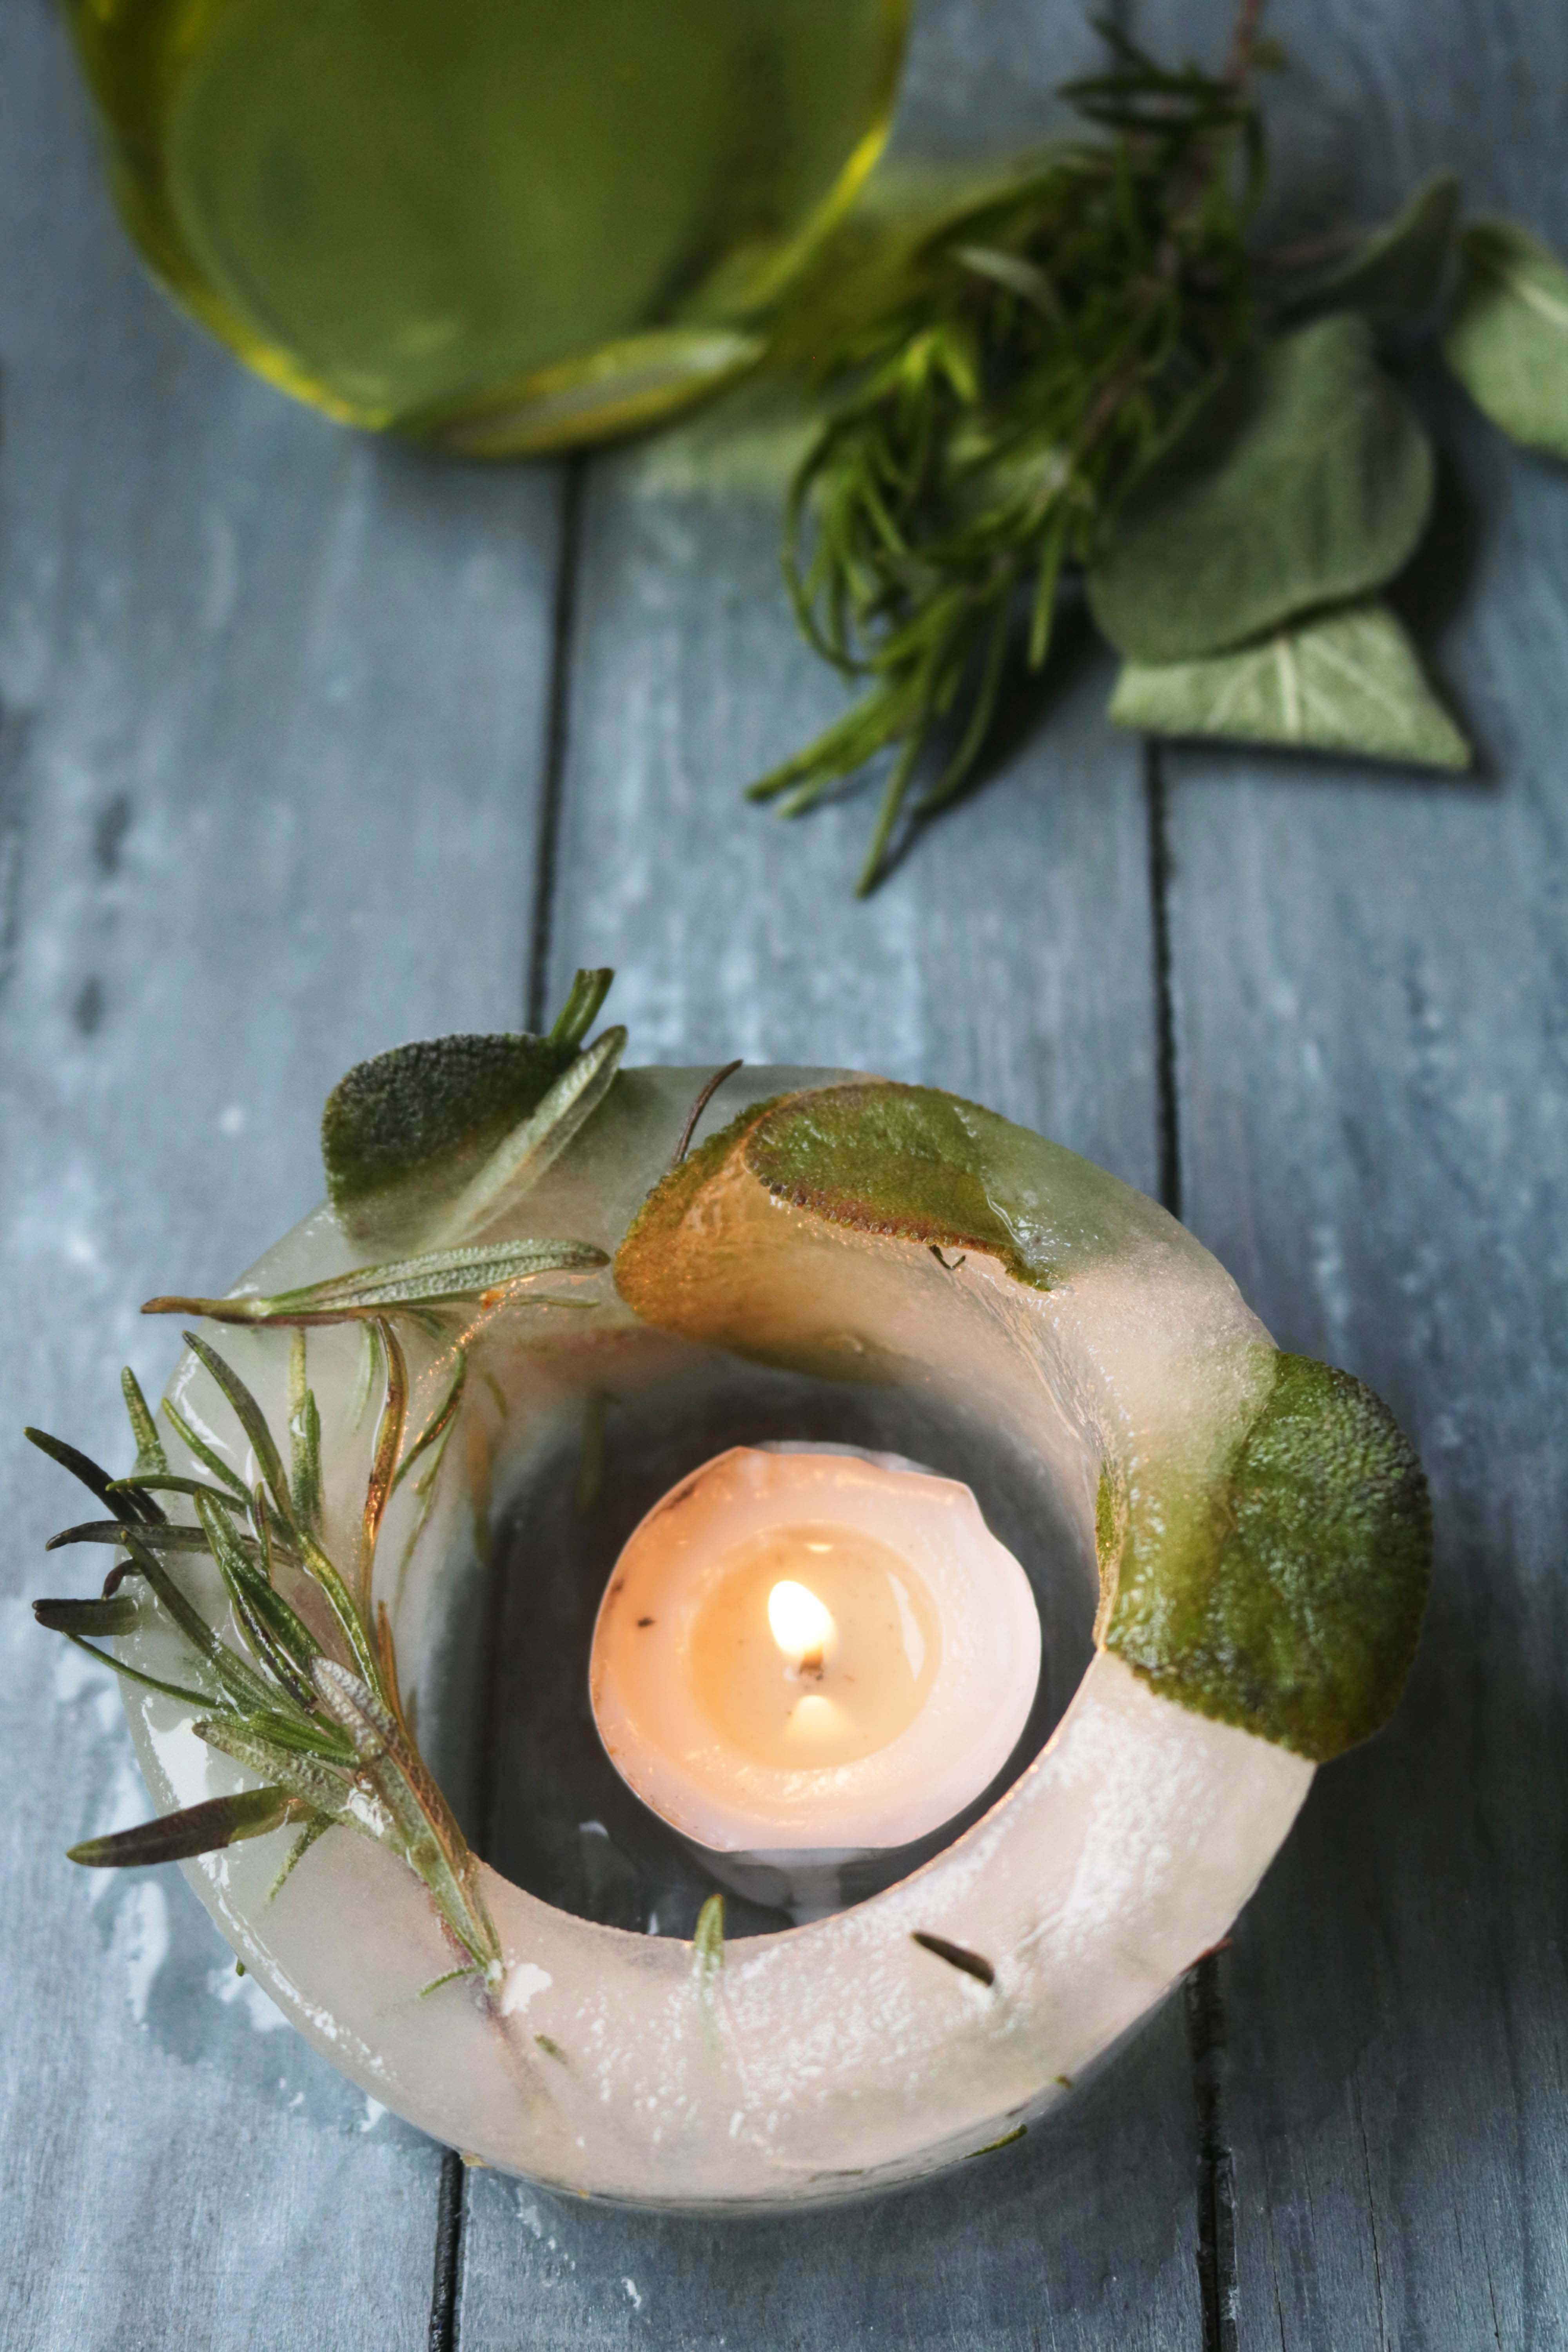 For a fun, 100% natural Imbolc craft, trying making this ice lantern with materials already in your kitchen.